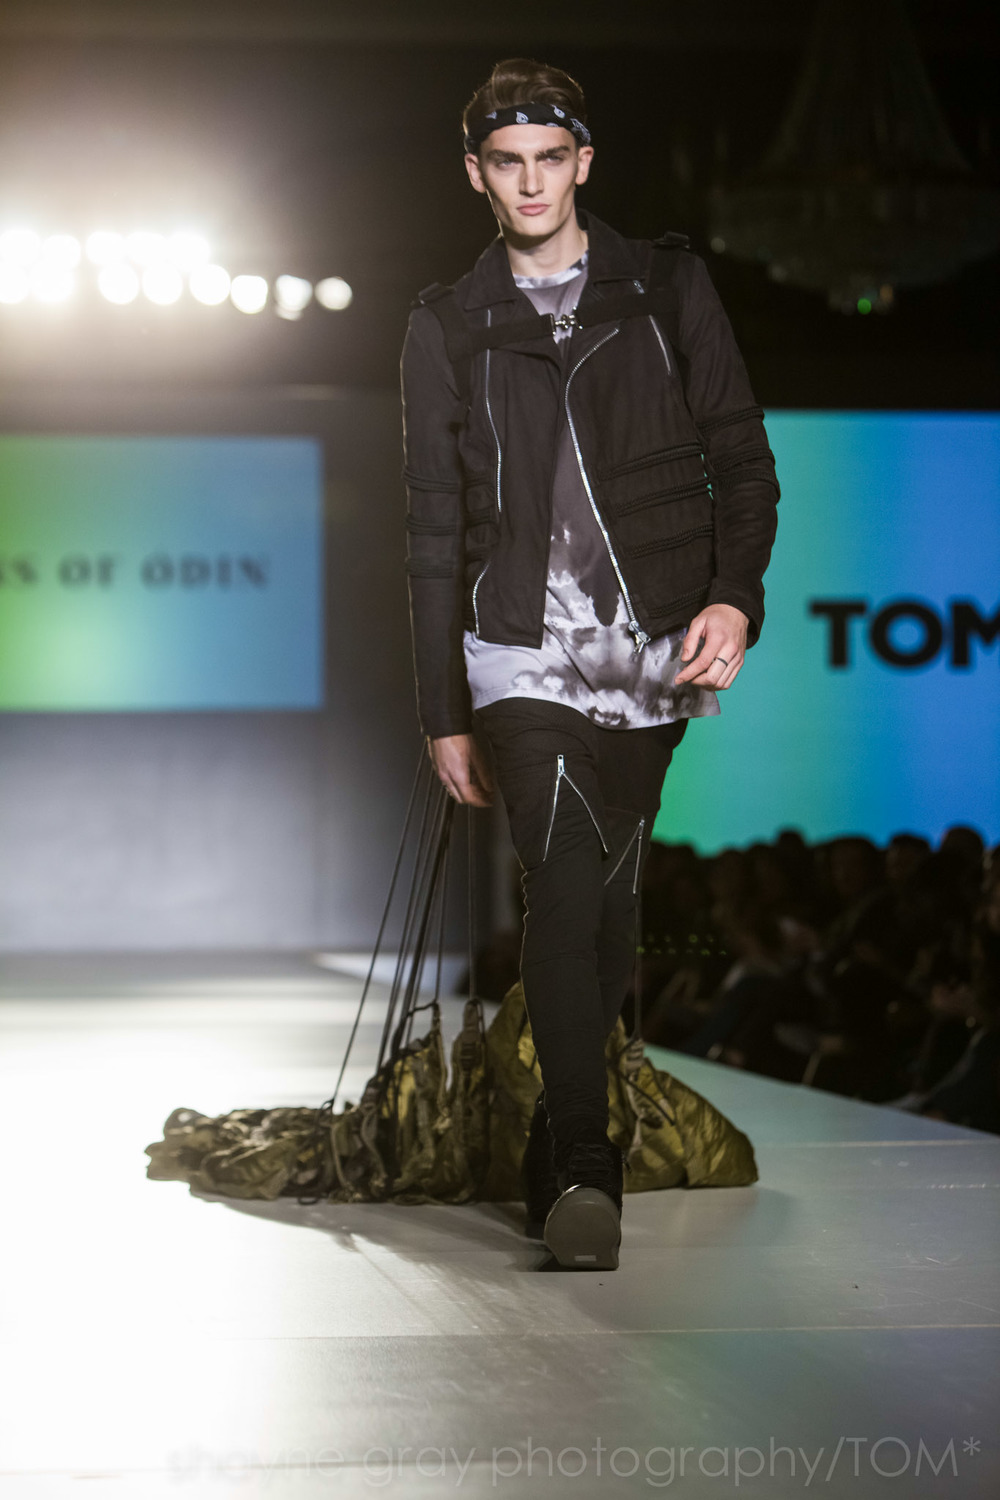 Shayne-Gray-Toronto-men's-fashion_week-TOM-sons-of-odin-8578.jpg